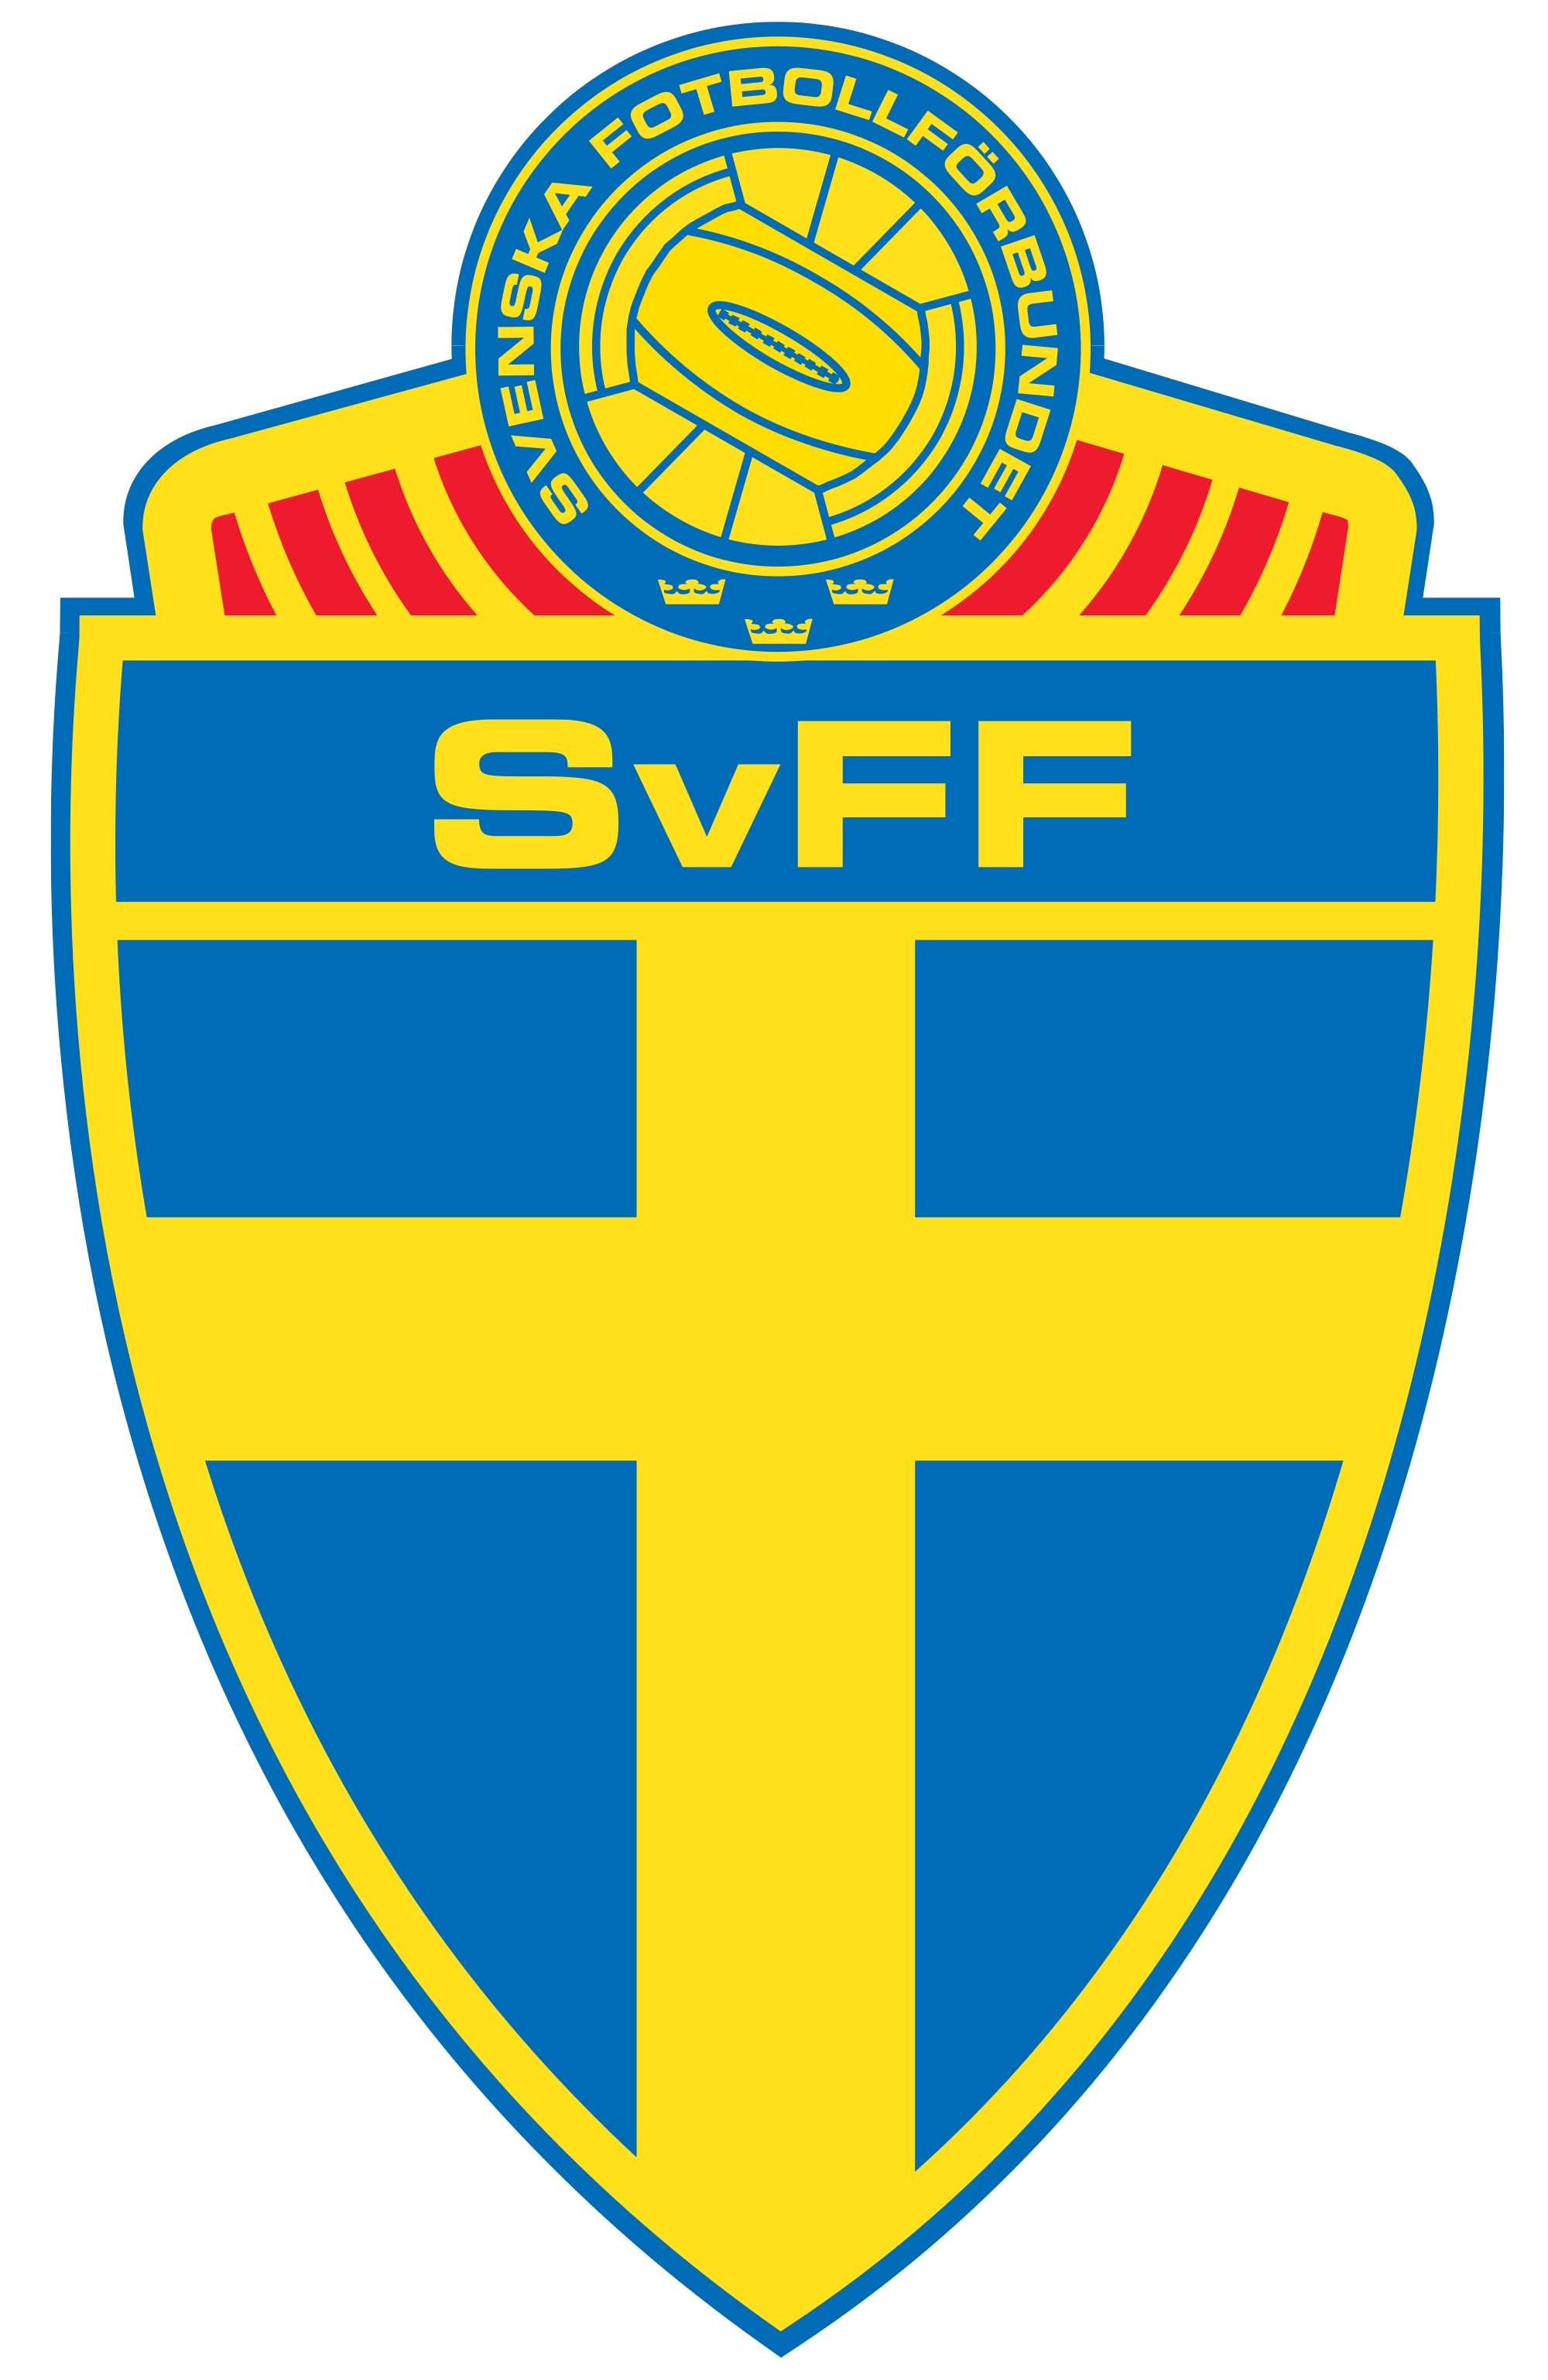 Sweden Football team logos, National football teams